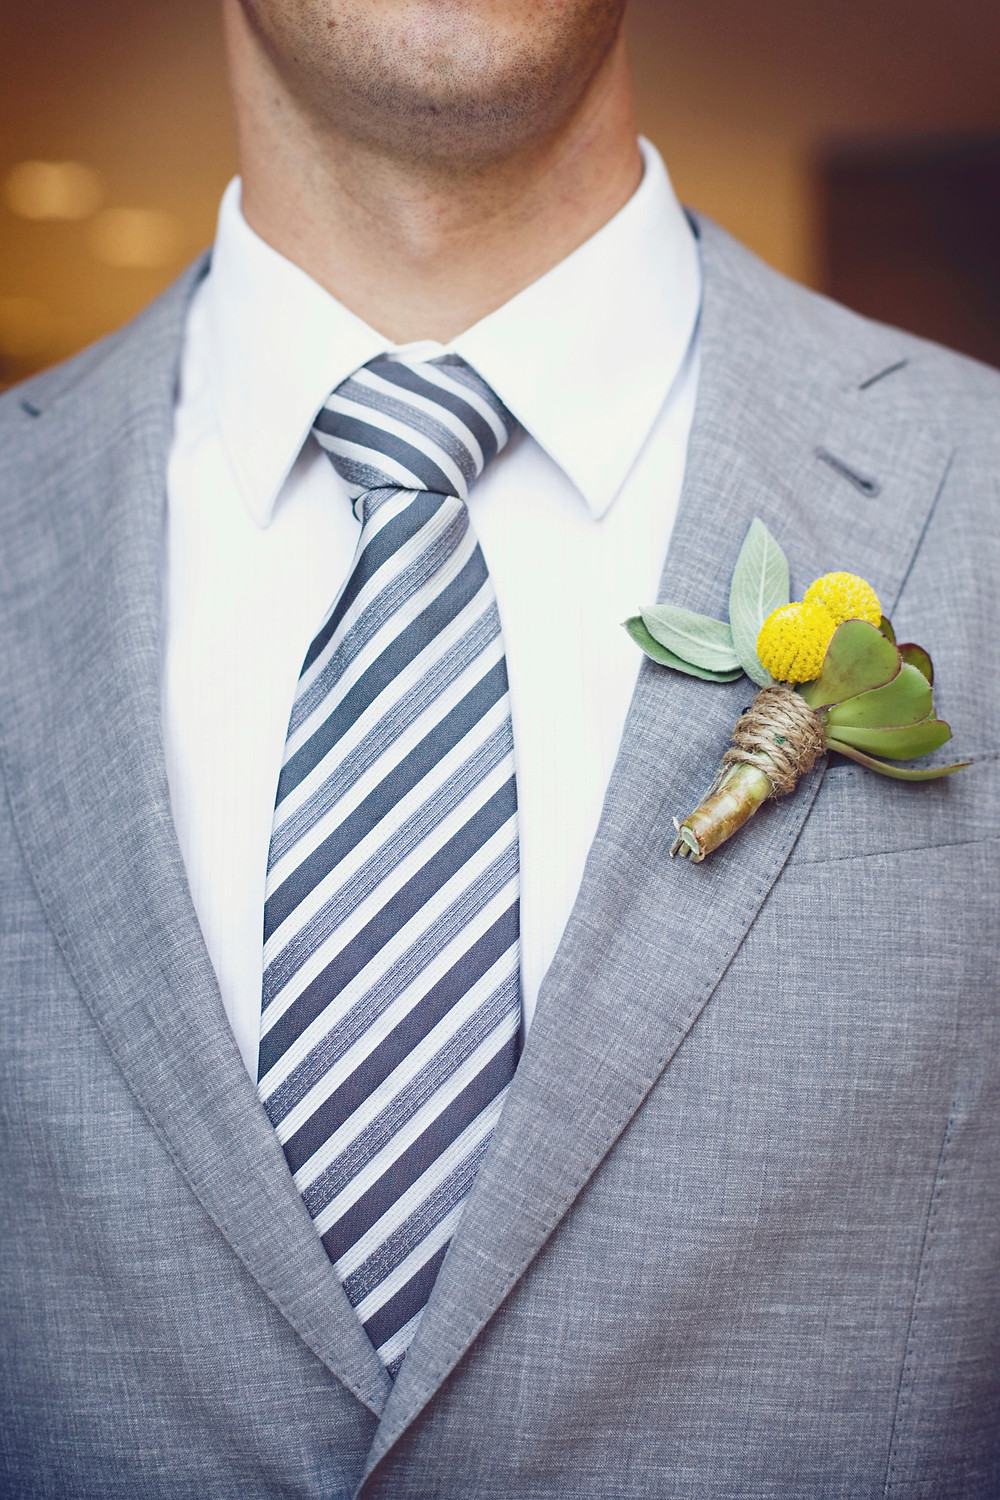 A groom wearing a grey suit is standing waiting for his bride on their wedding day.